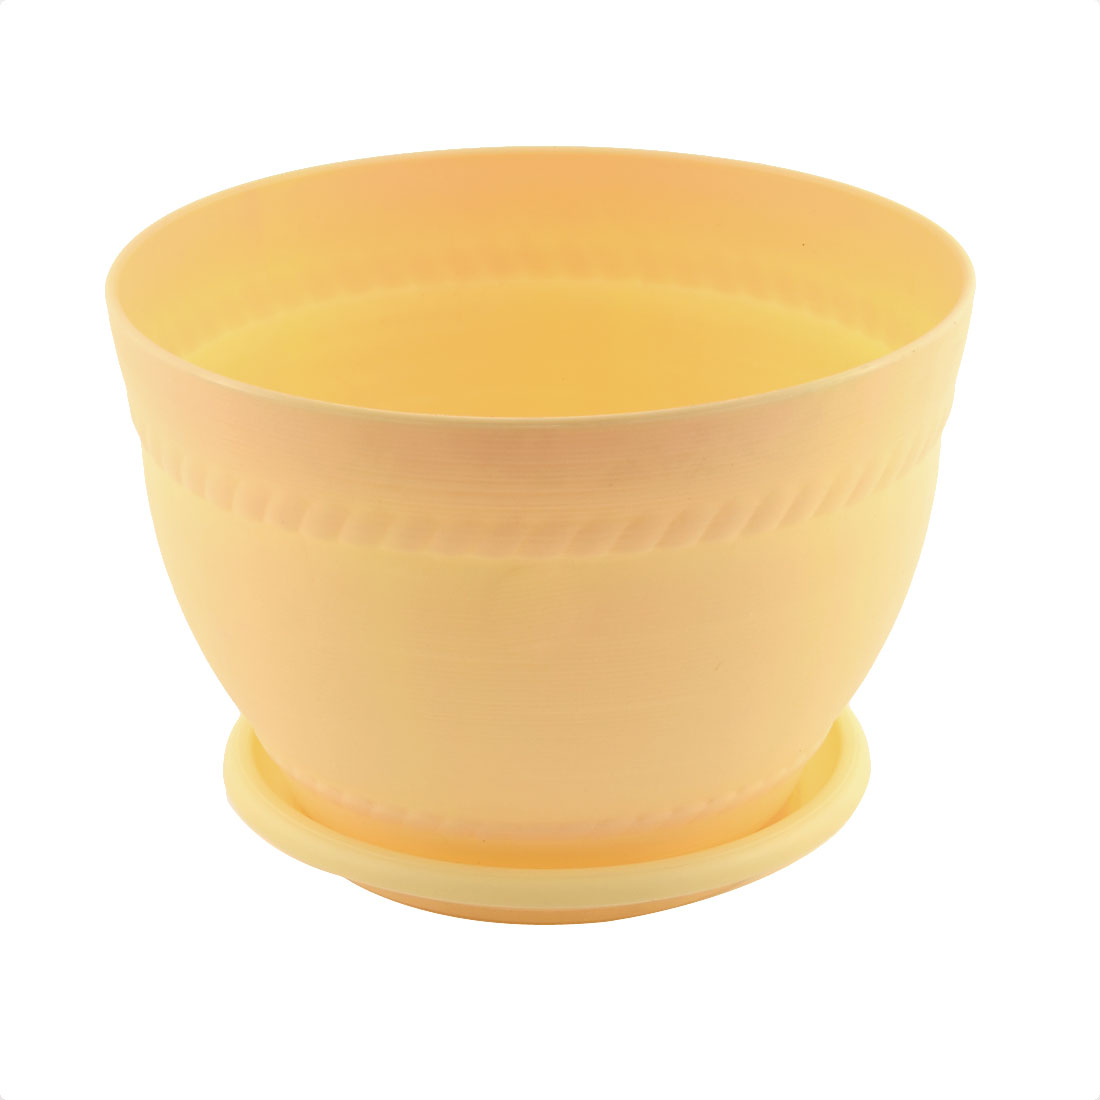 Home Office Plastic Pottery Clay Style Plant Flower Pot Holder Yellow w Pallet